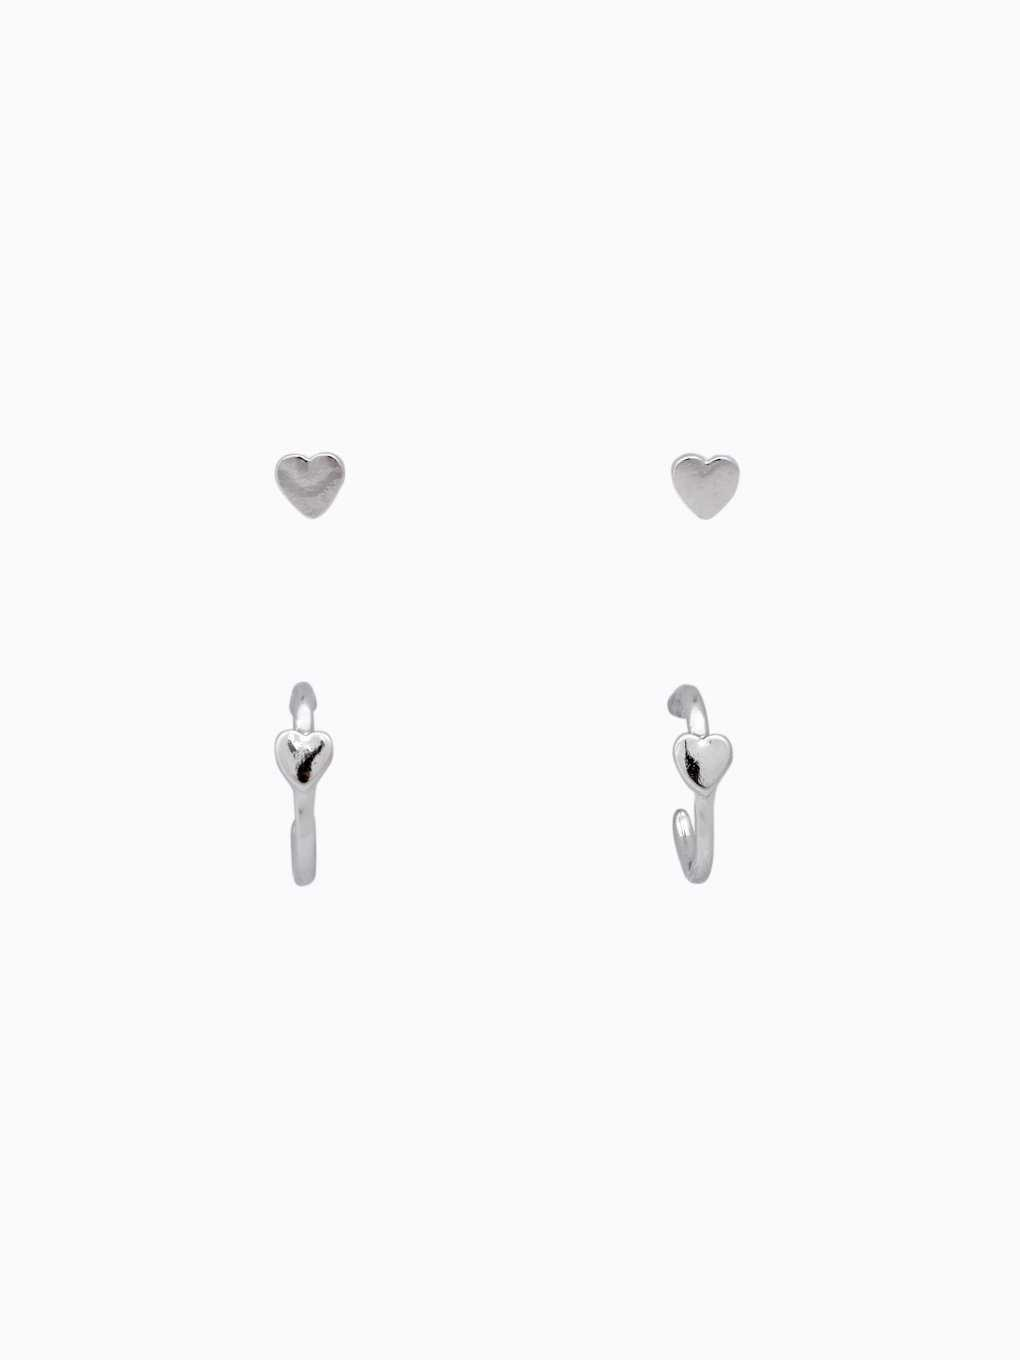 2-pack earrings set